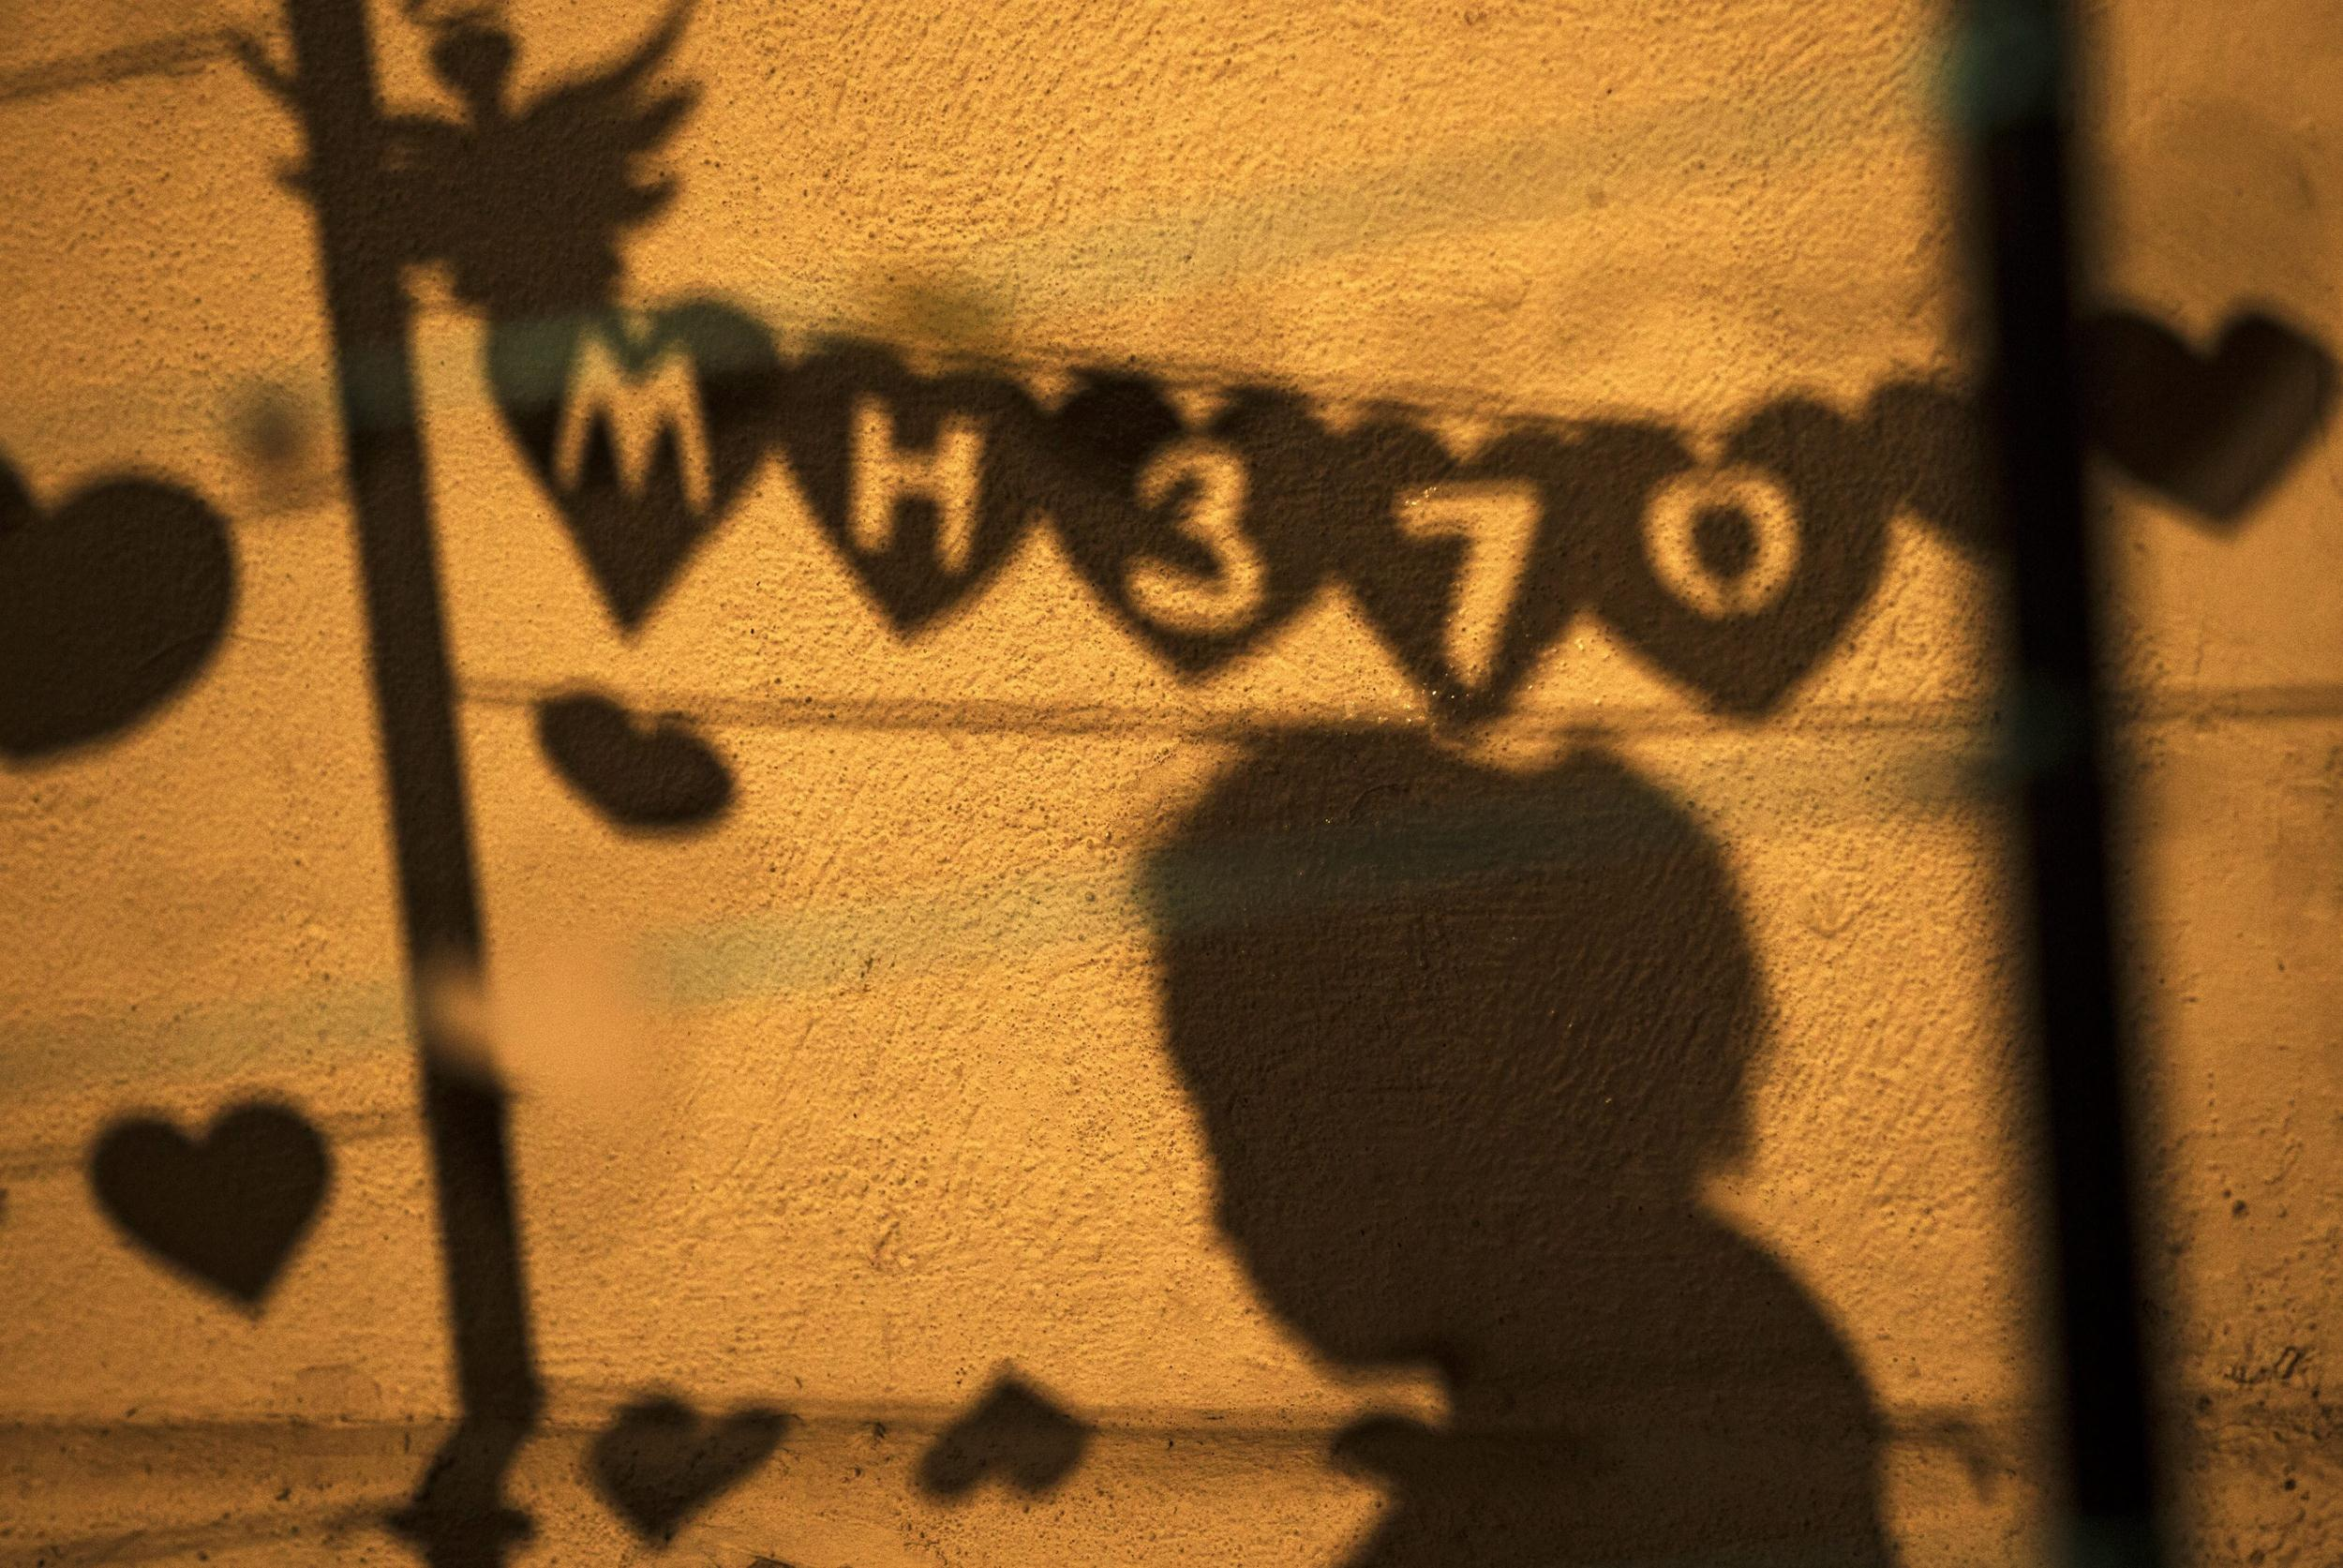 Image: Shadows of people hanging messages during an event 'Love U MH370' in Kuala Lumpur